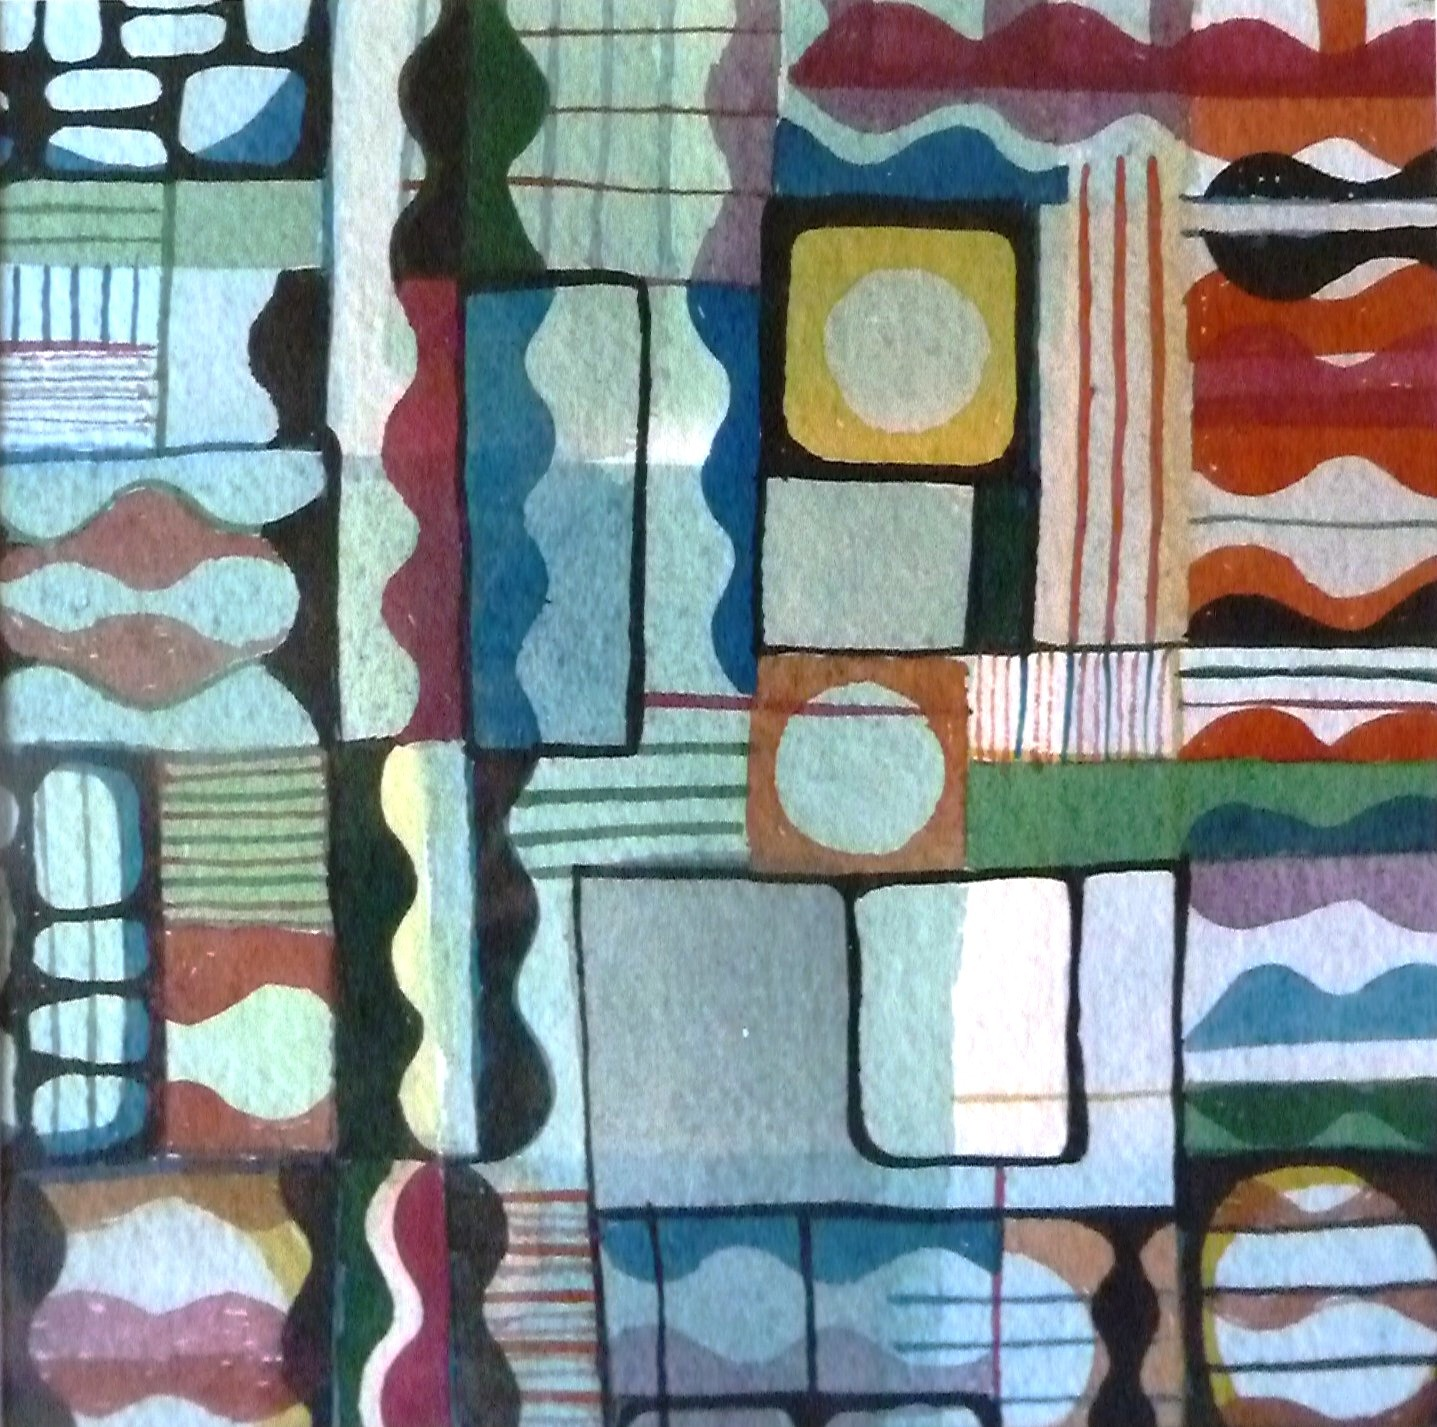 60s piece. Watercolour on Handmade Paper. 2014.